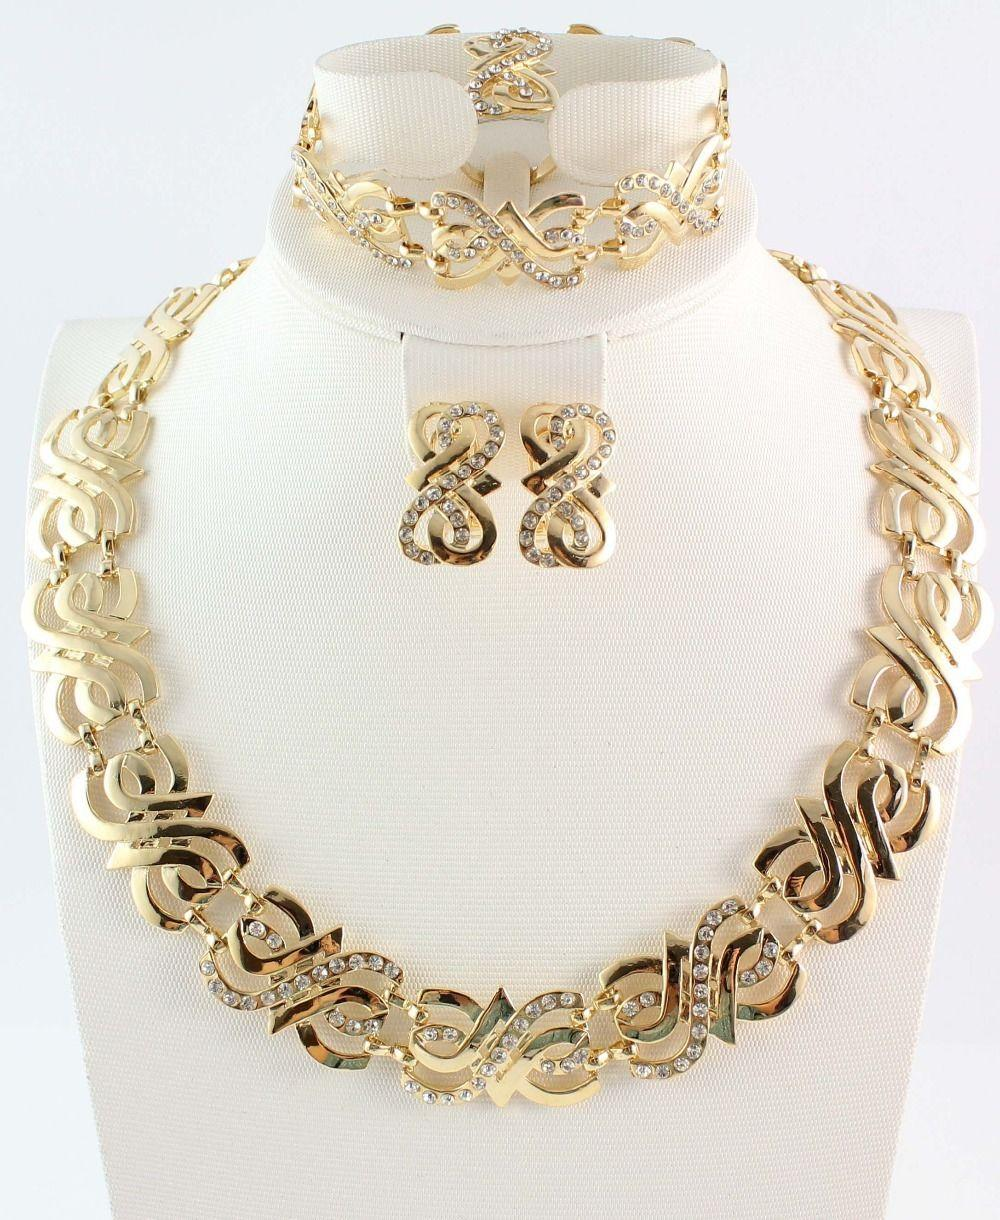 ASIAN DESIGN JEWELRY SET